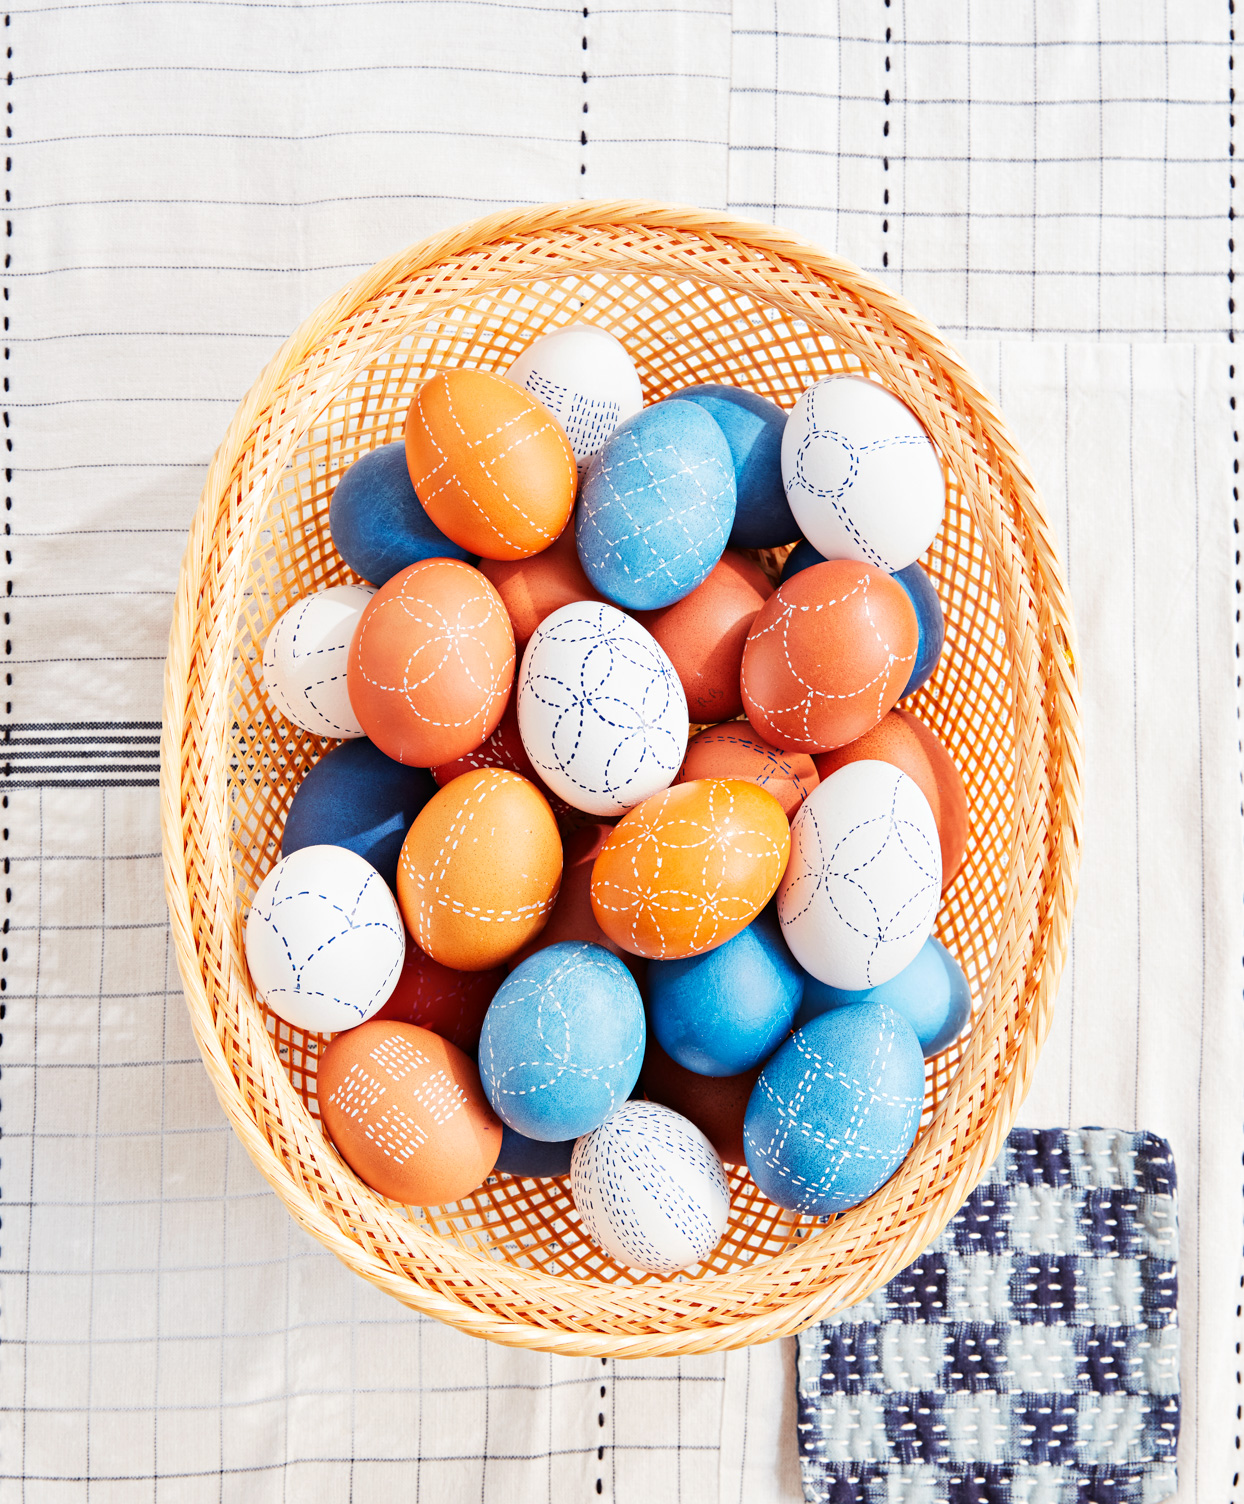 basket needlework-style dyed eggs